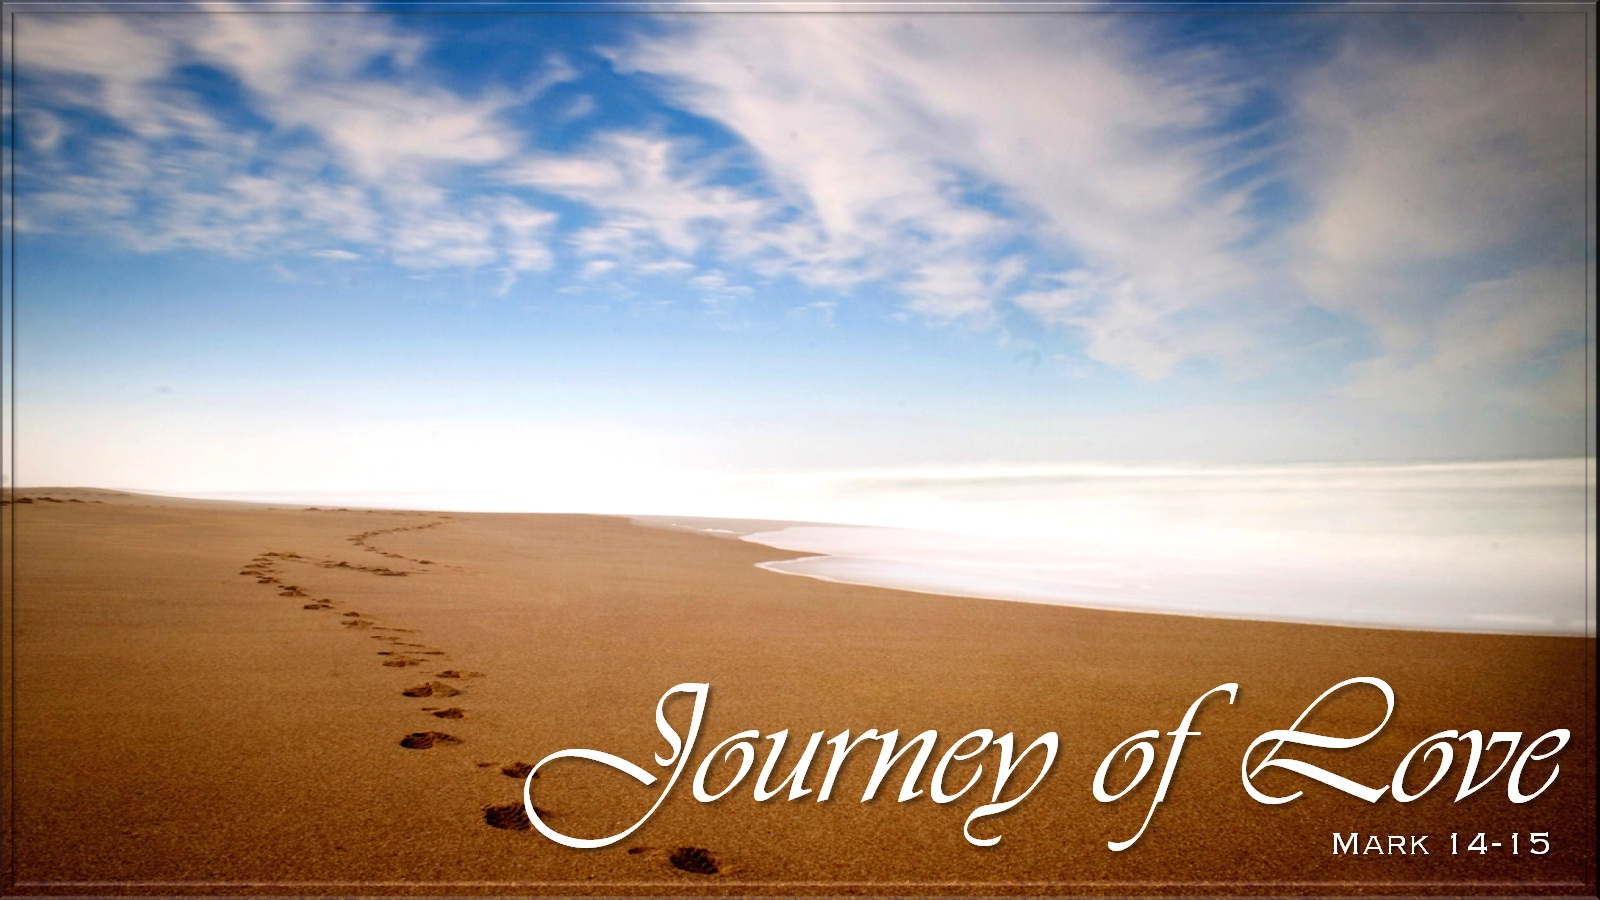 Journey of our love